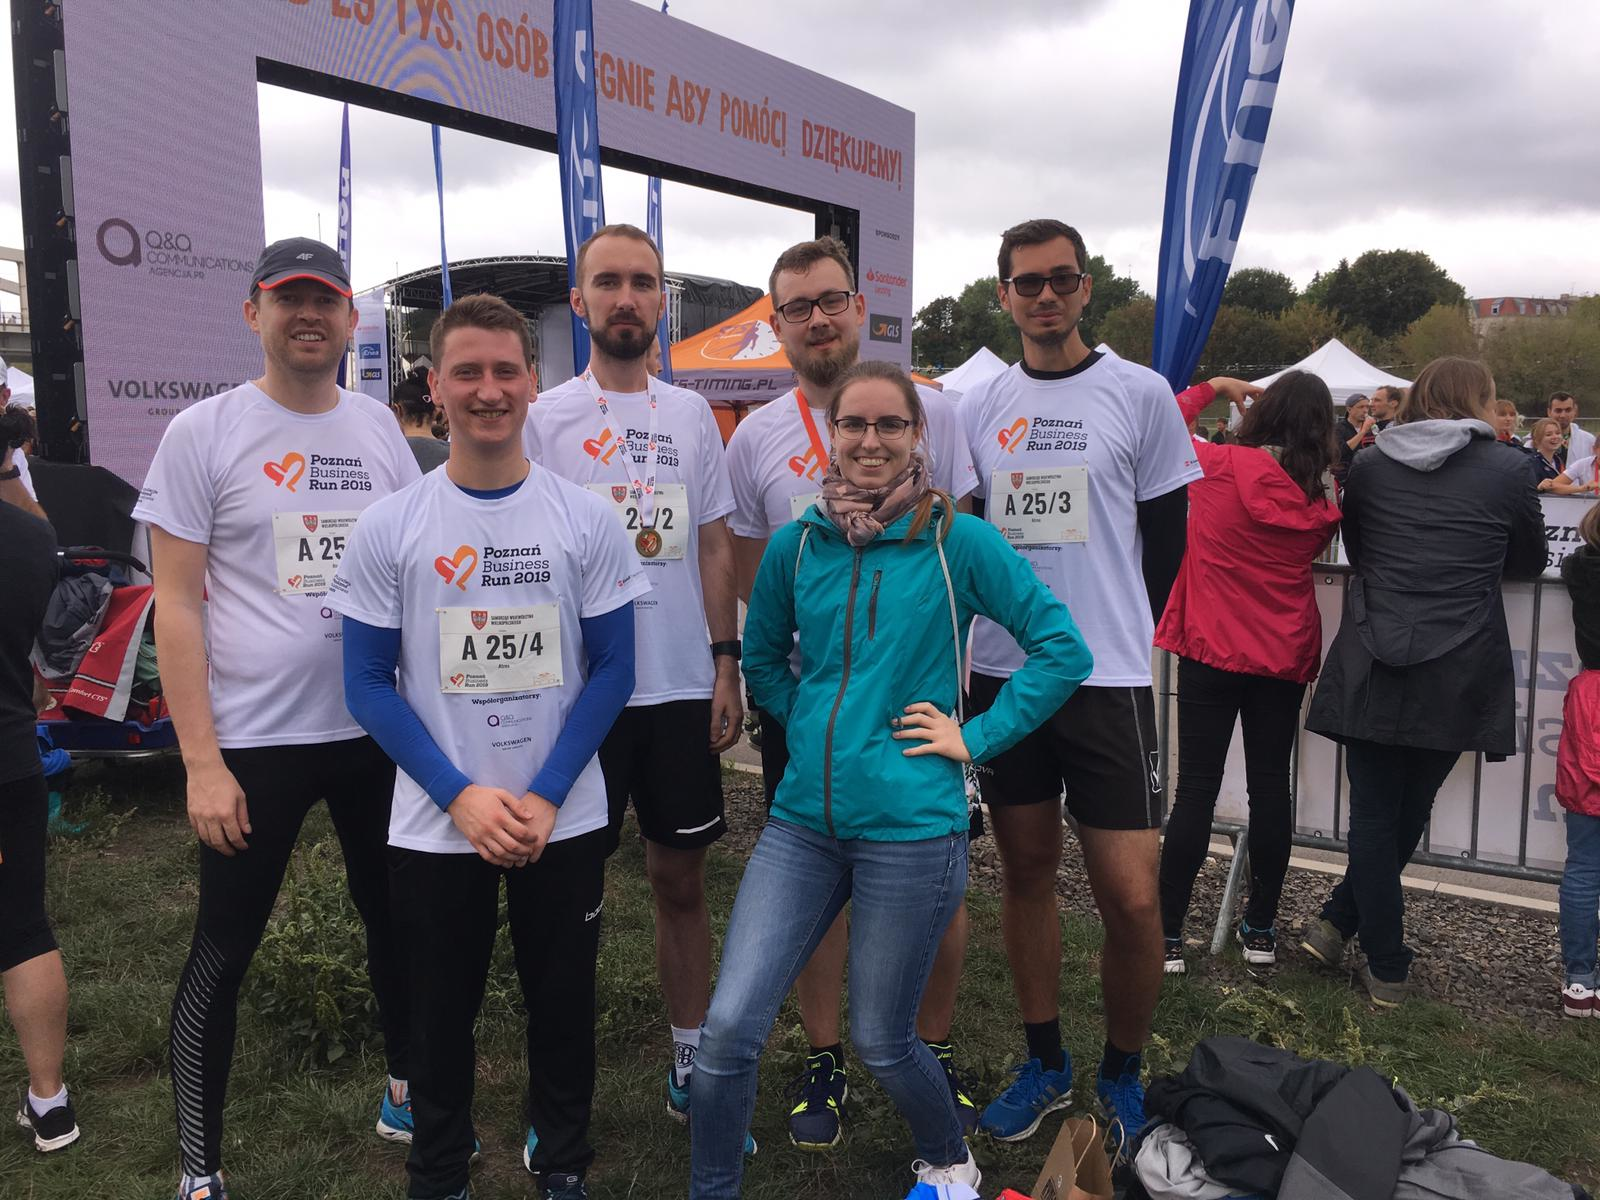 Business run 2019 druzyna firmy Atres